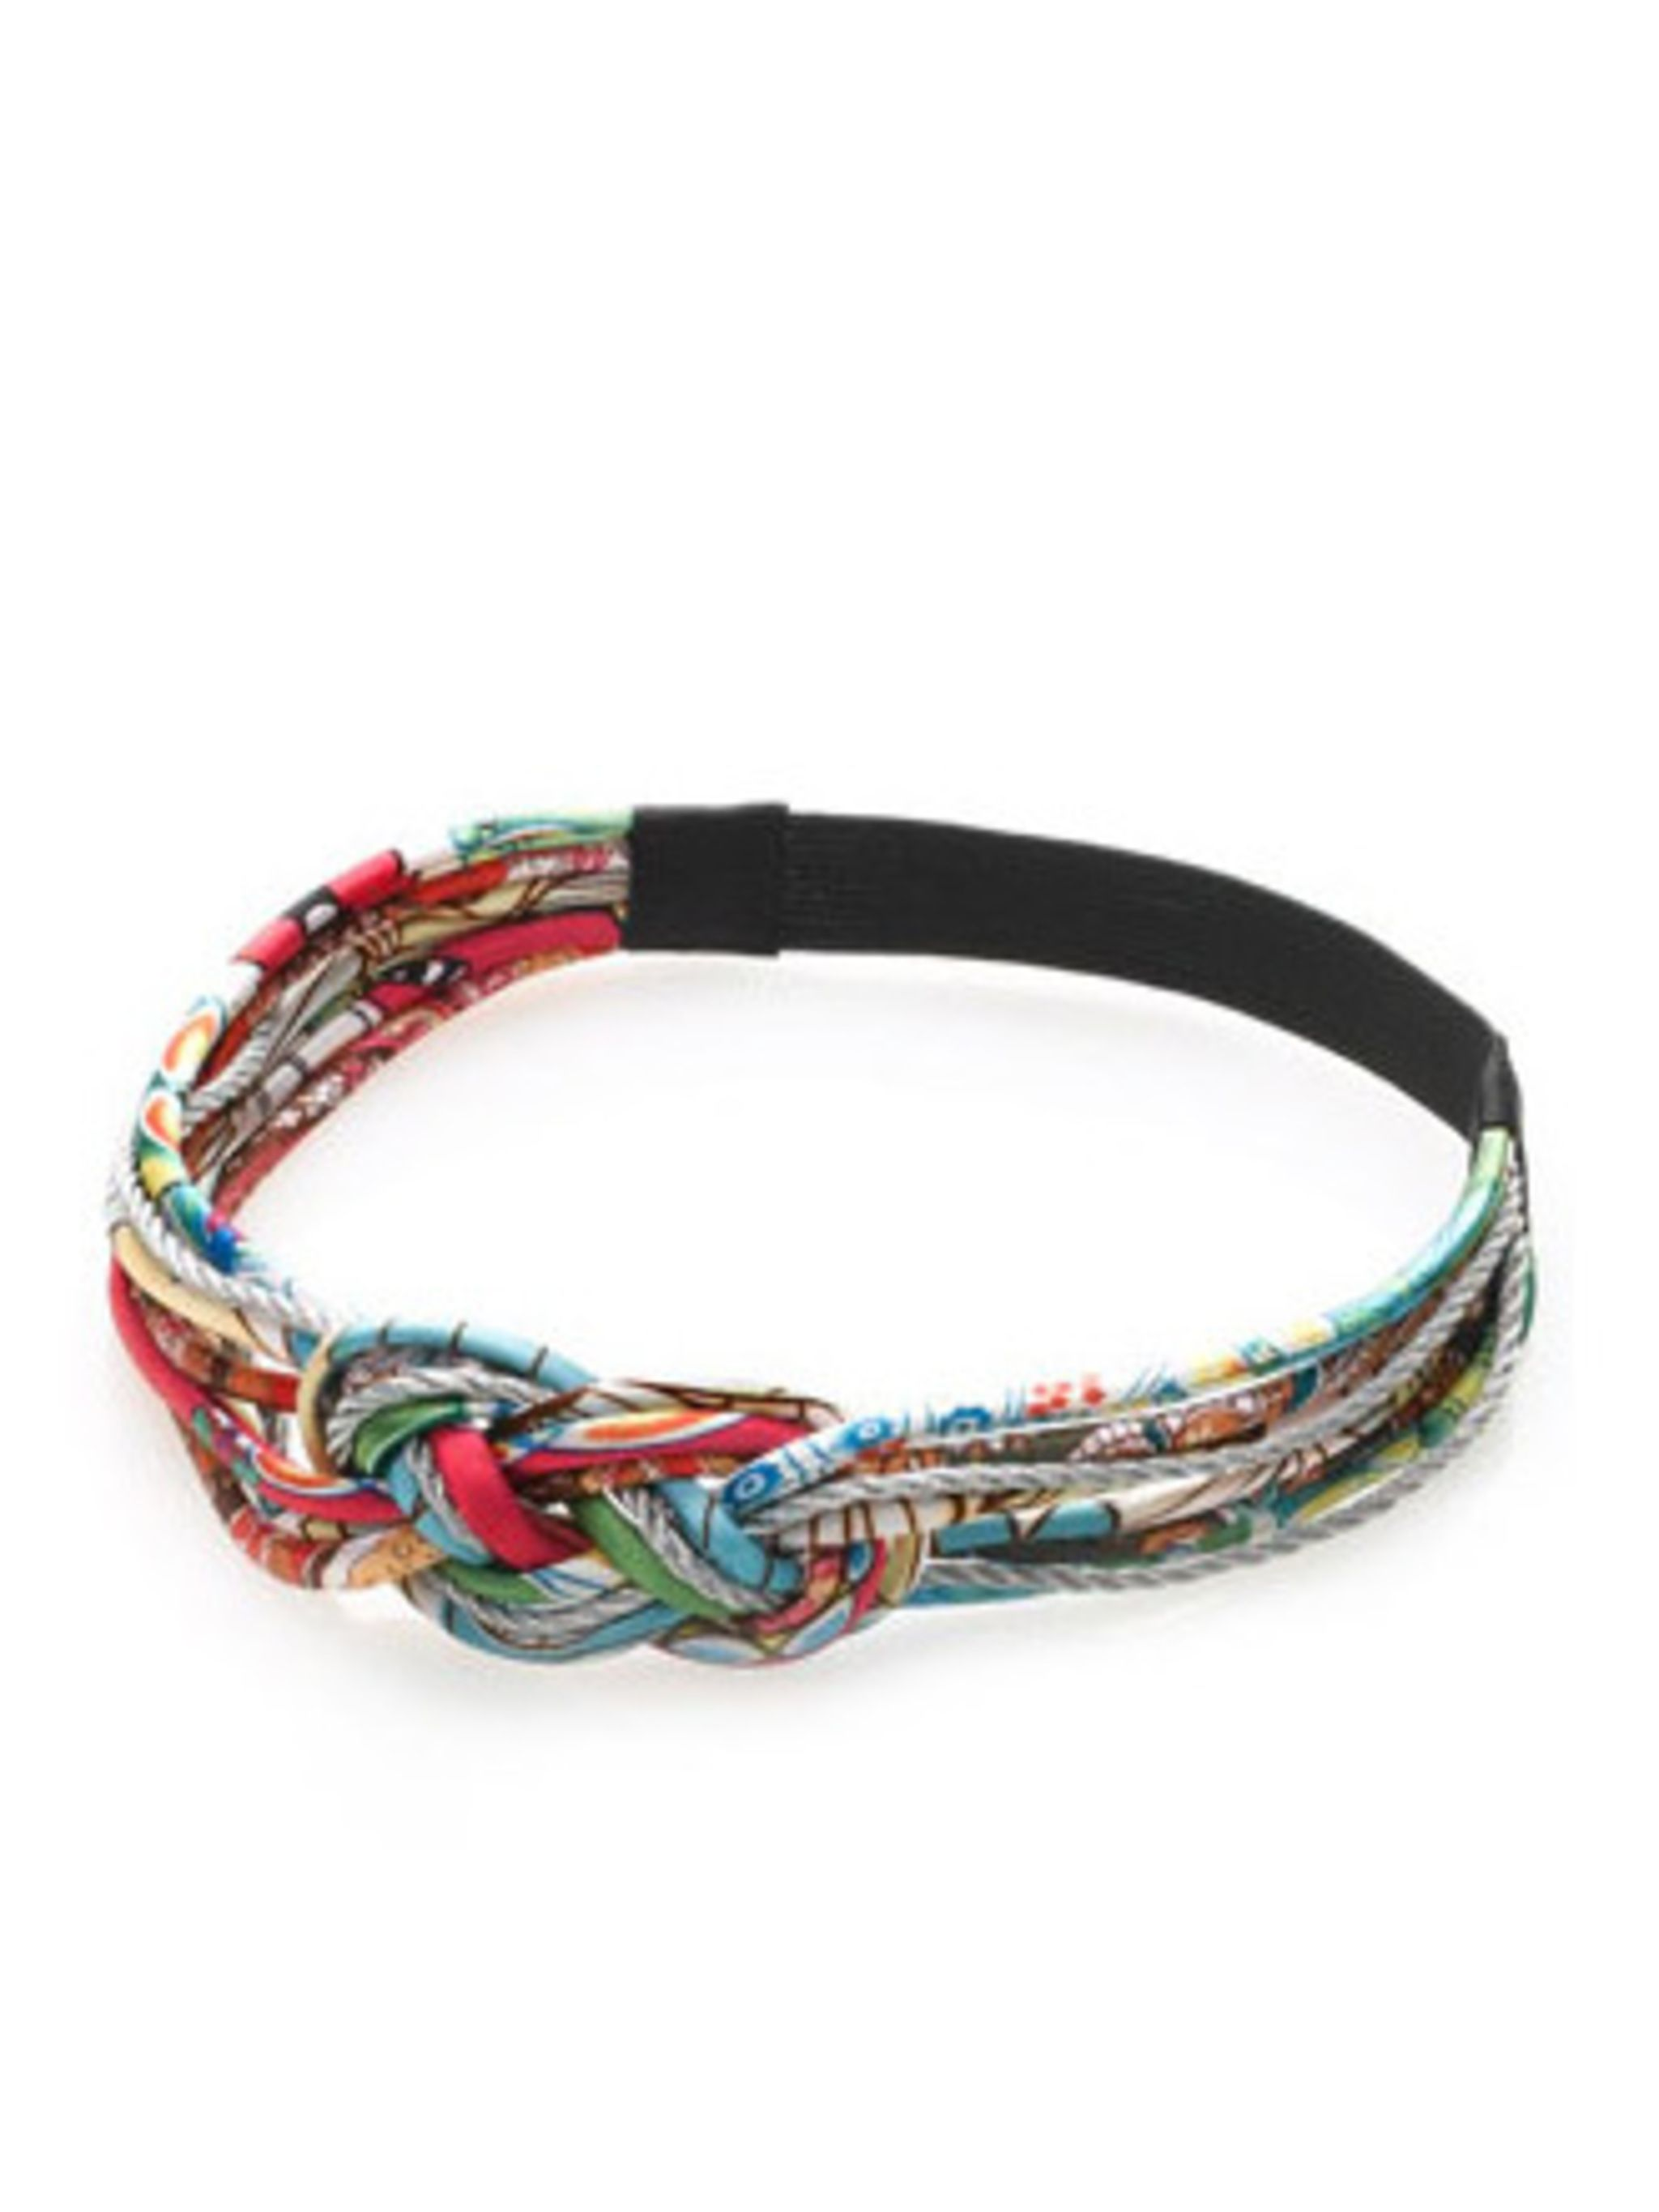 """<p>Tribal prints are big news this spring. Nod to the trend with this cute, purse friendly, knotted hairband.</p><p>Bando, £7 by <a href=""""http://www.monsoon.co.uk/invt/68663099&bklist=icat,4,shop,accessorize,accznewarrivals"""">Accessorize</a></p>"""